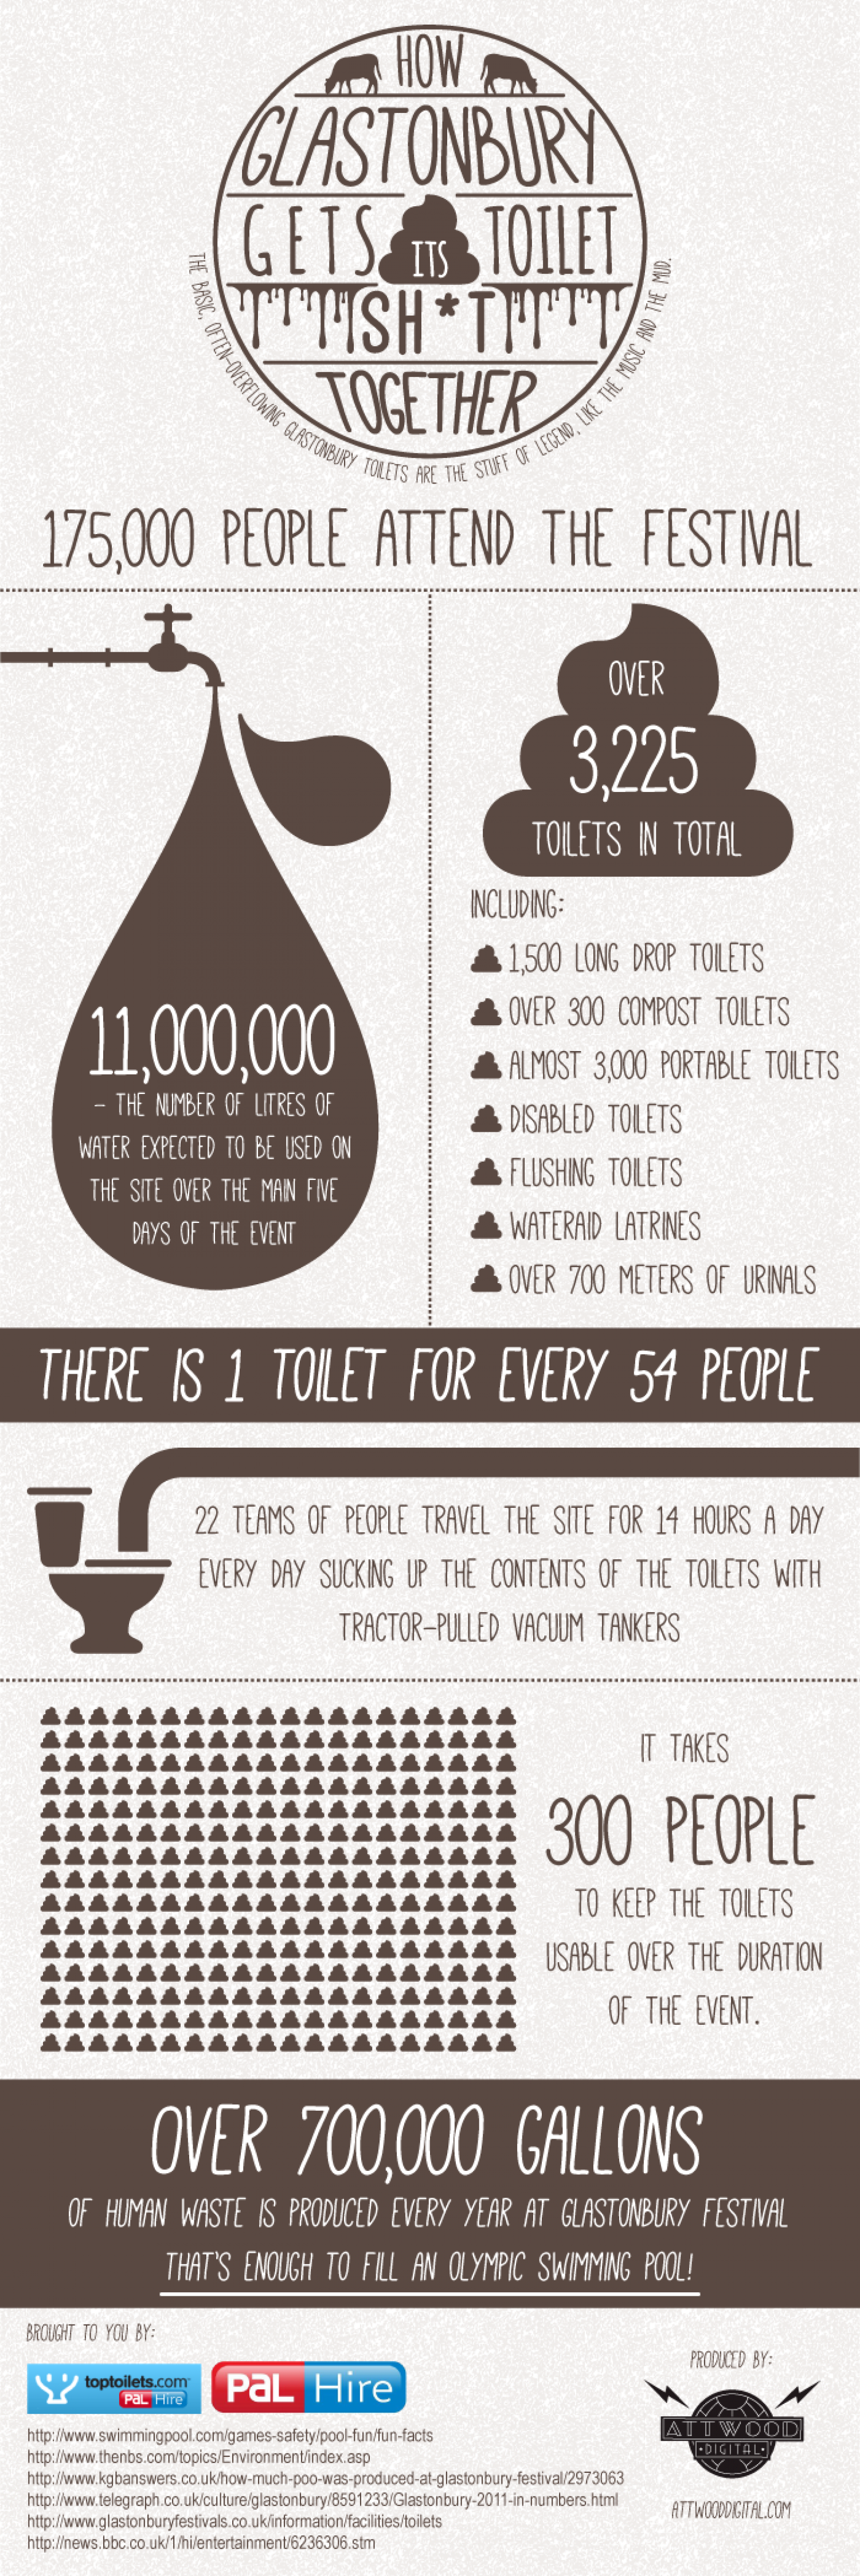 How Glastonbury Gets Its Toilet Sh*t Together Infographic